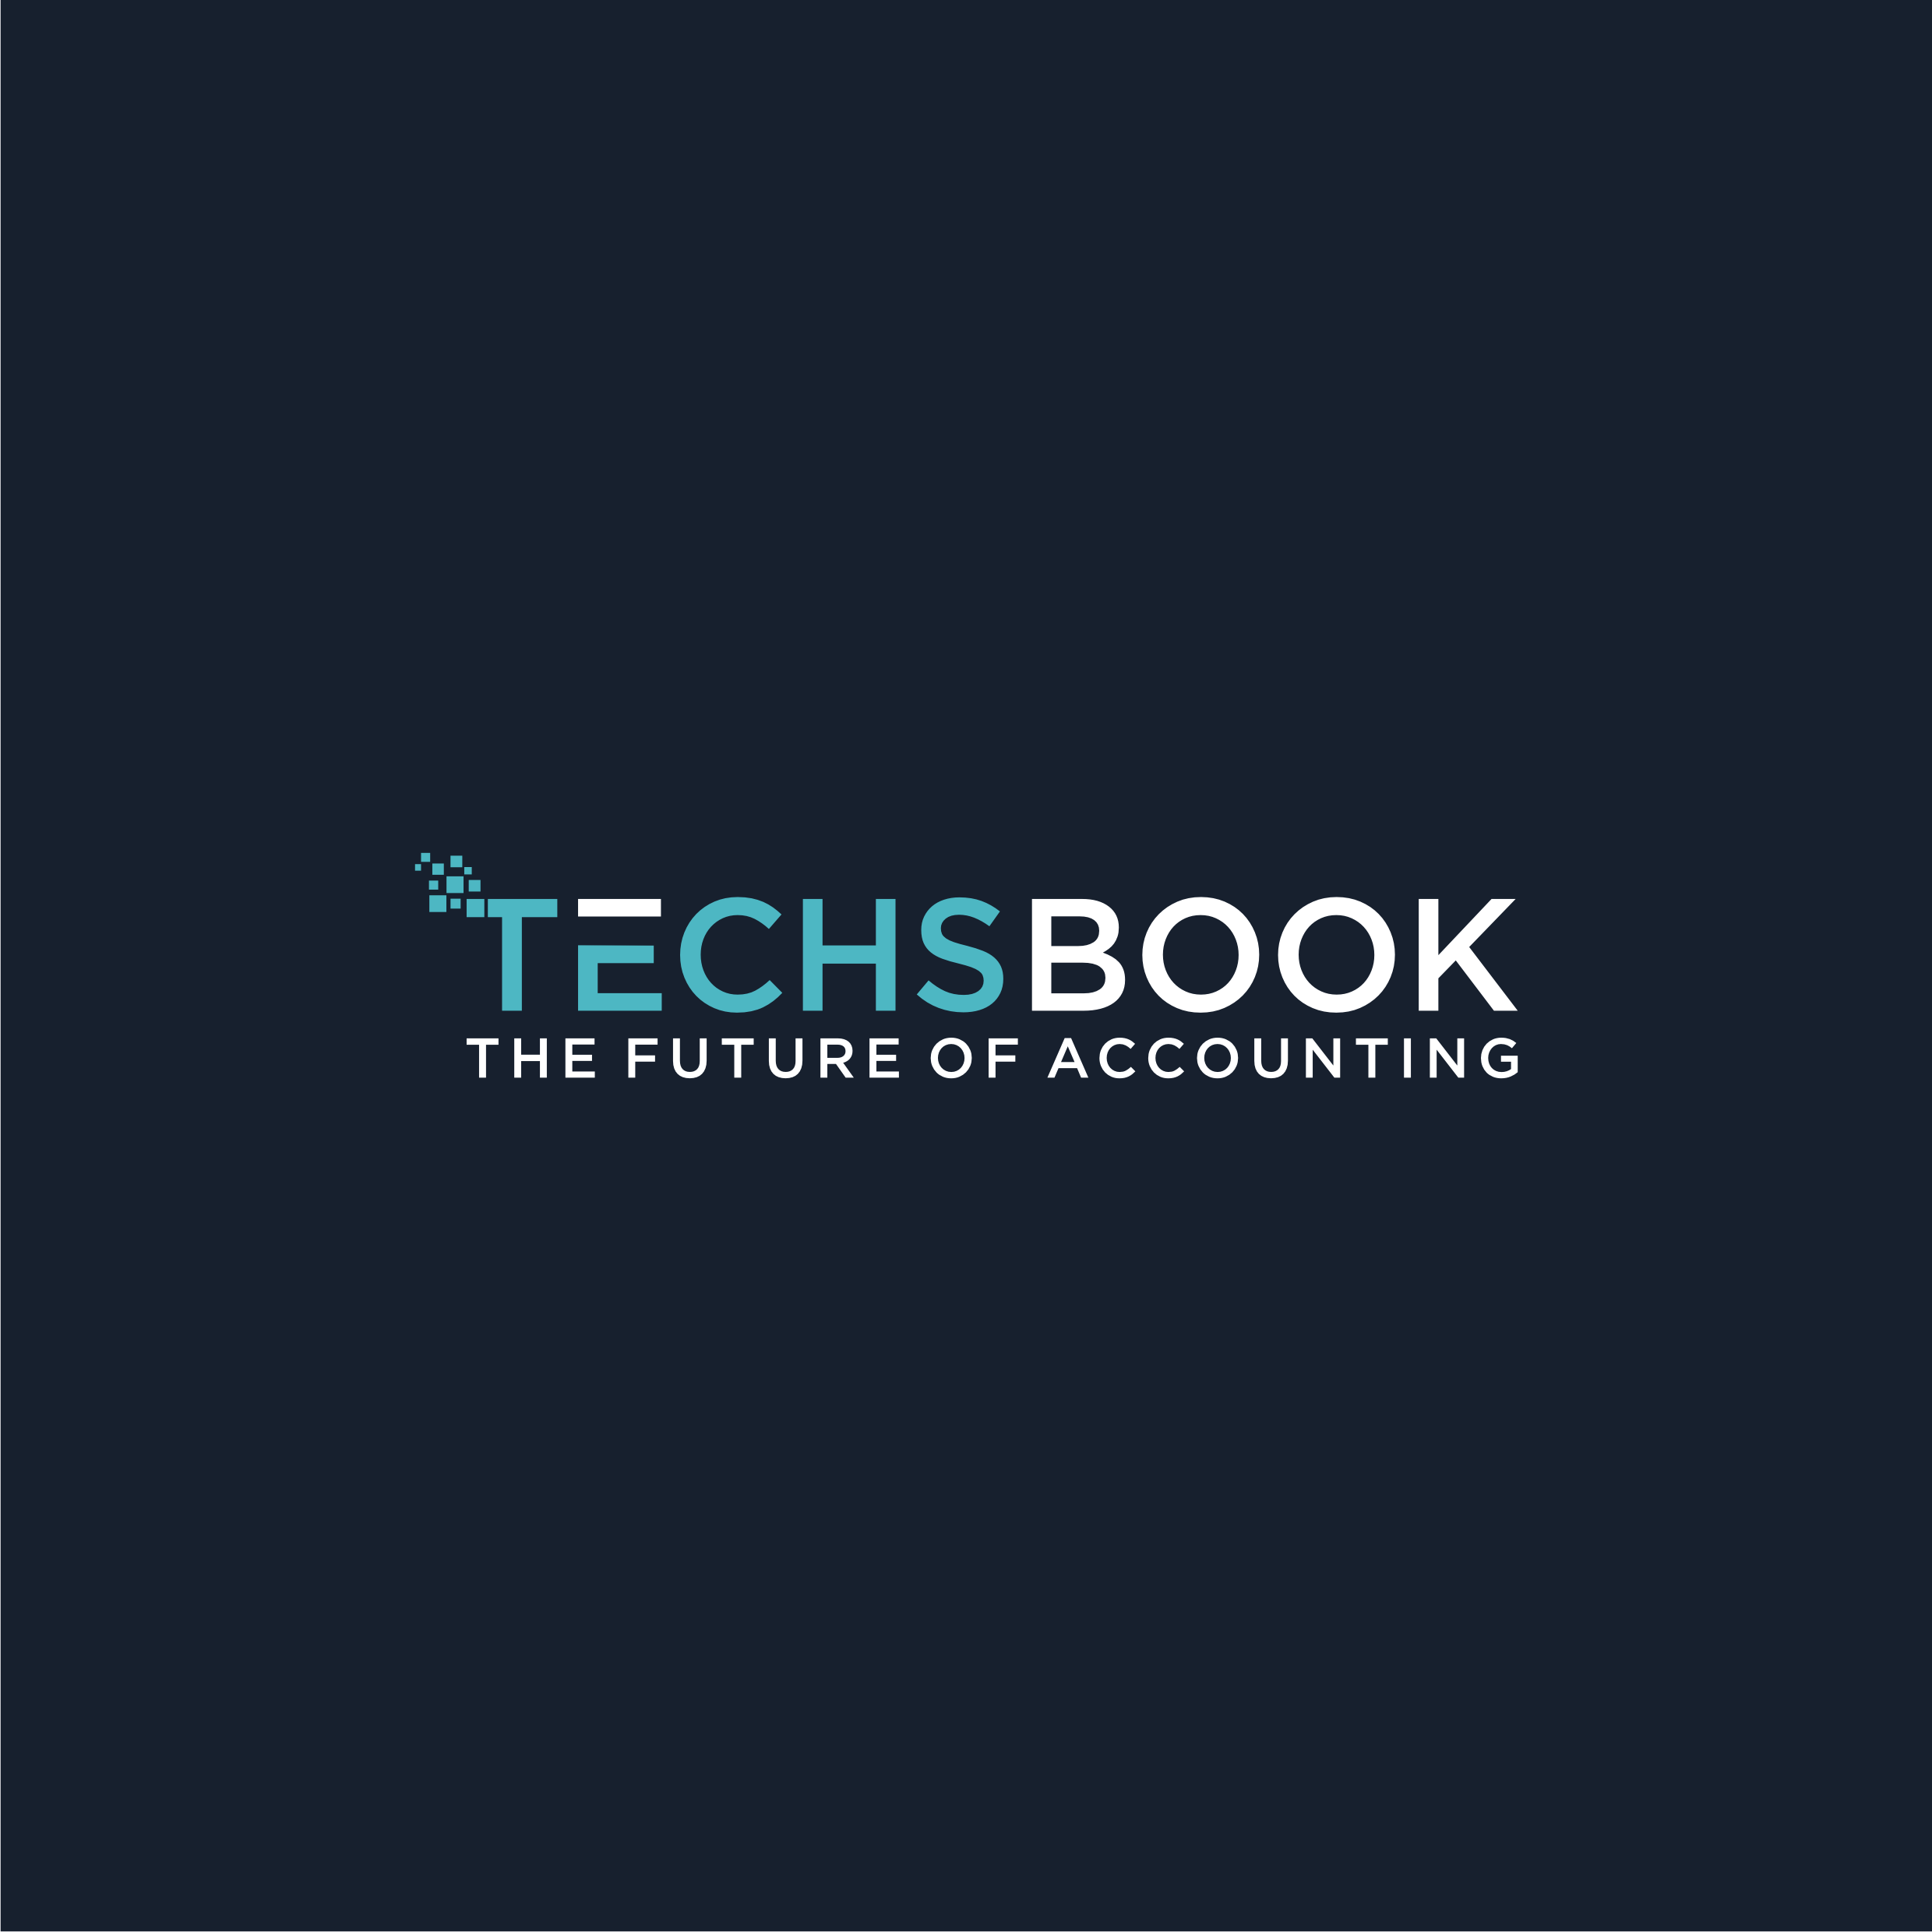 Techsbook Accounting Limited